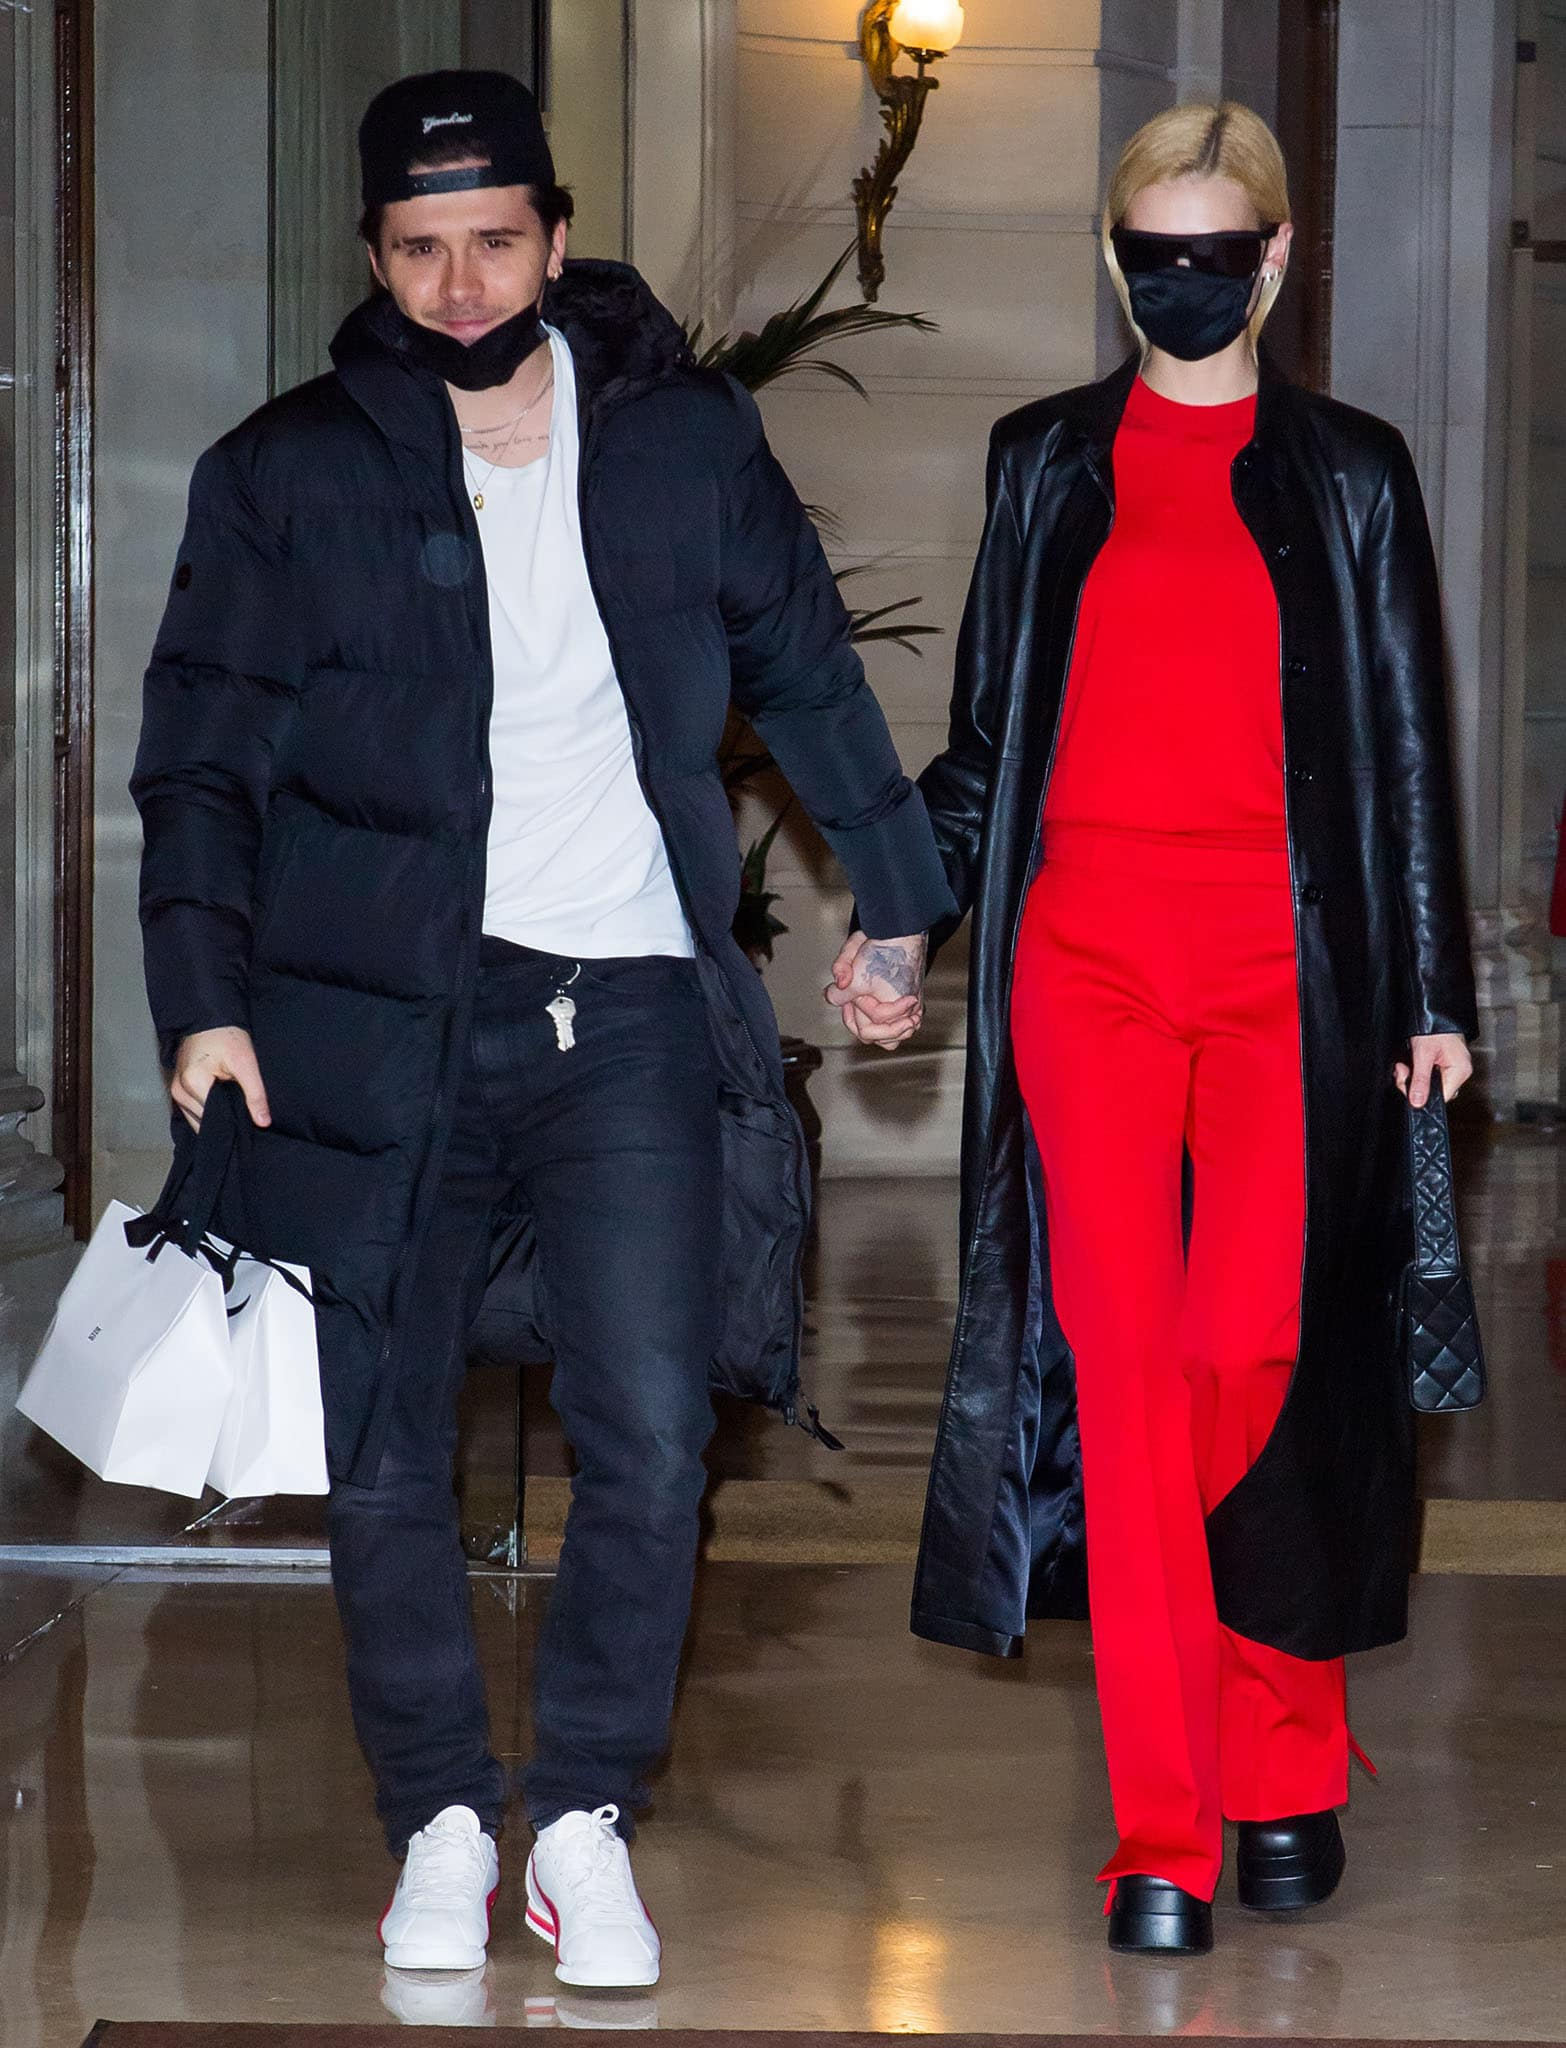 Nicola Peltz styles her red outfit with a black leather coat, sunglasses, face mask, and chunky boots